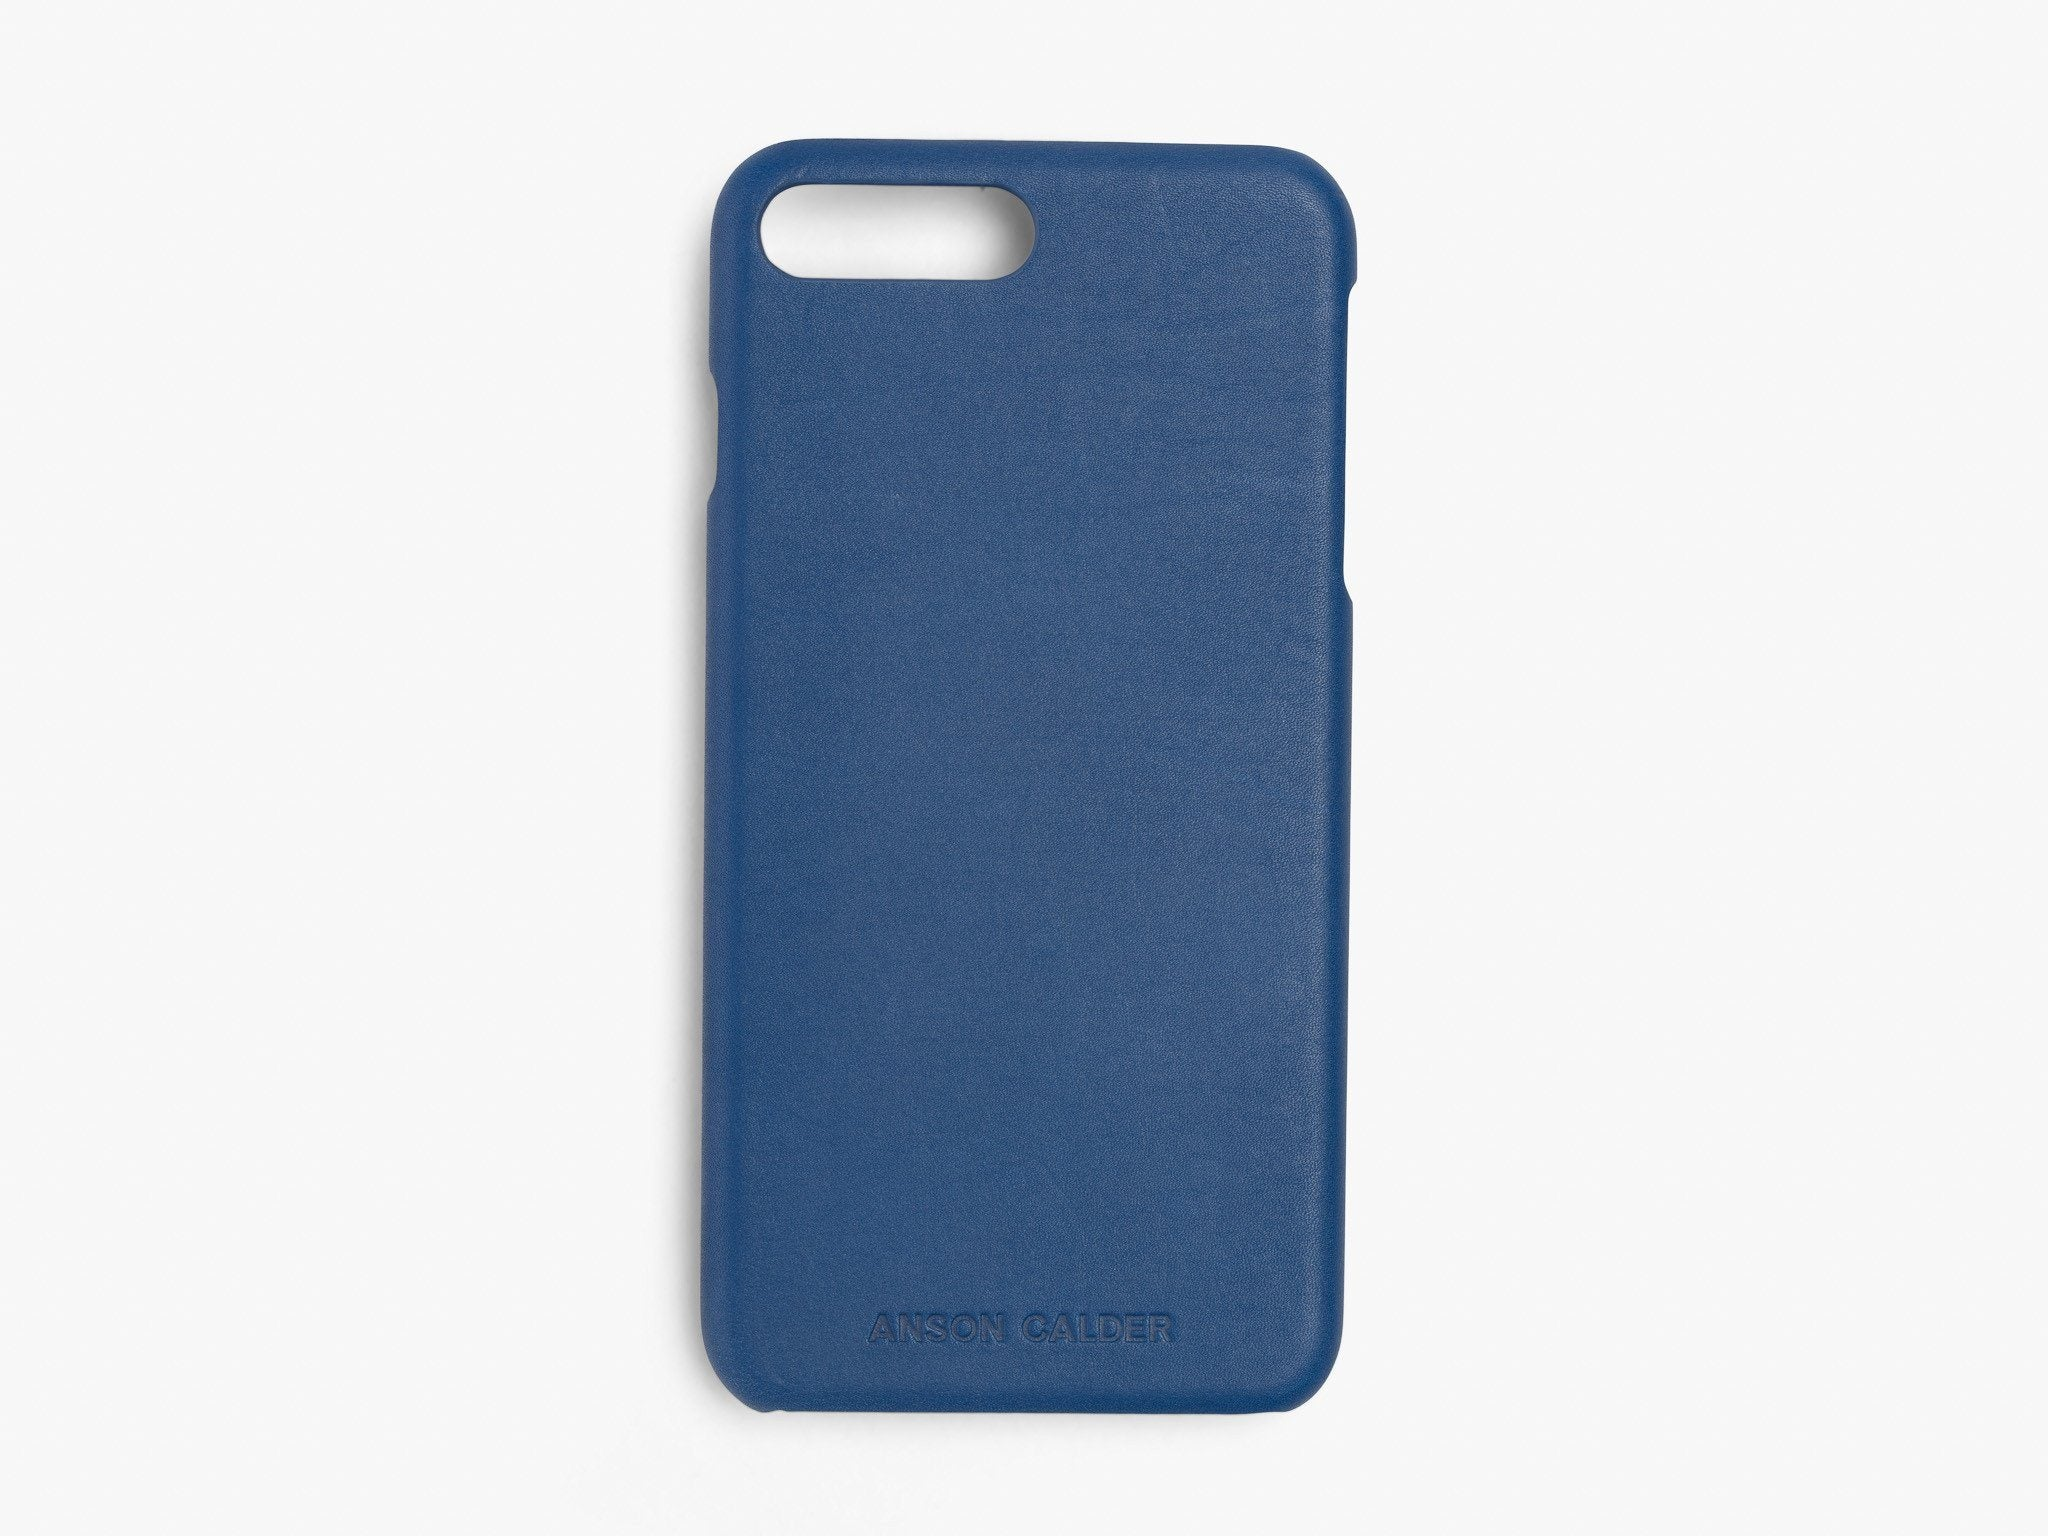 CALFSKIN iPHONE CASE CASES ANSON CALDER iPhone 6 Plus _Cobalt